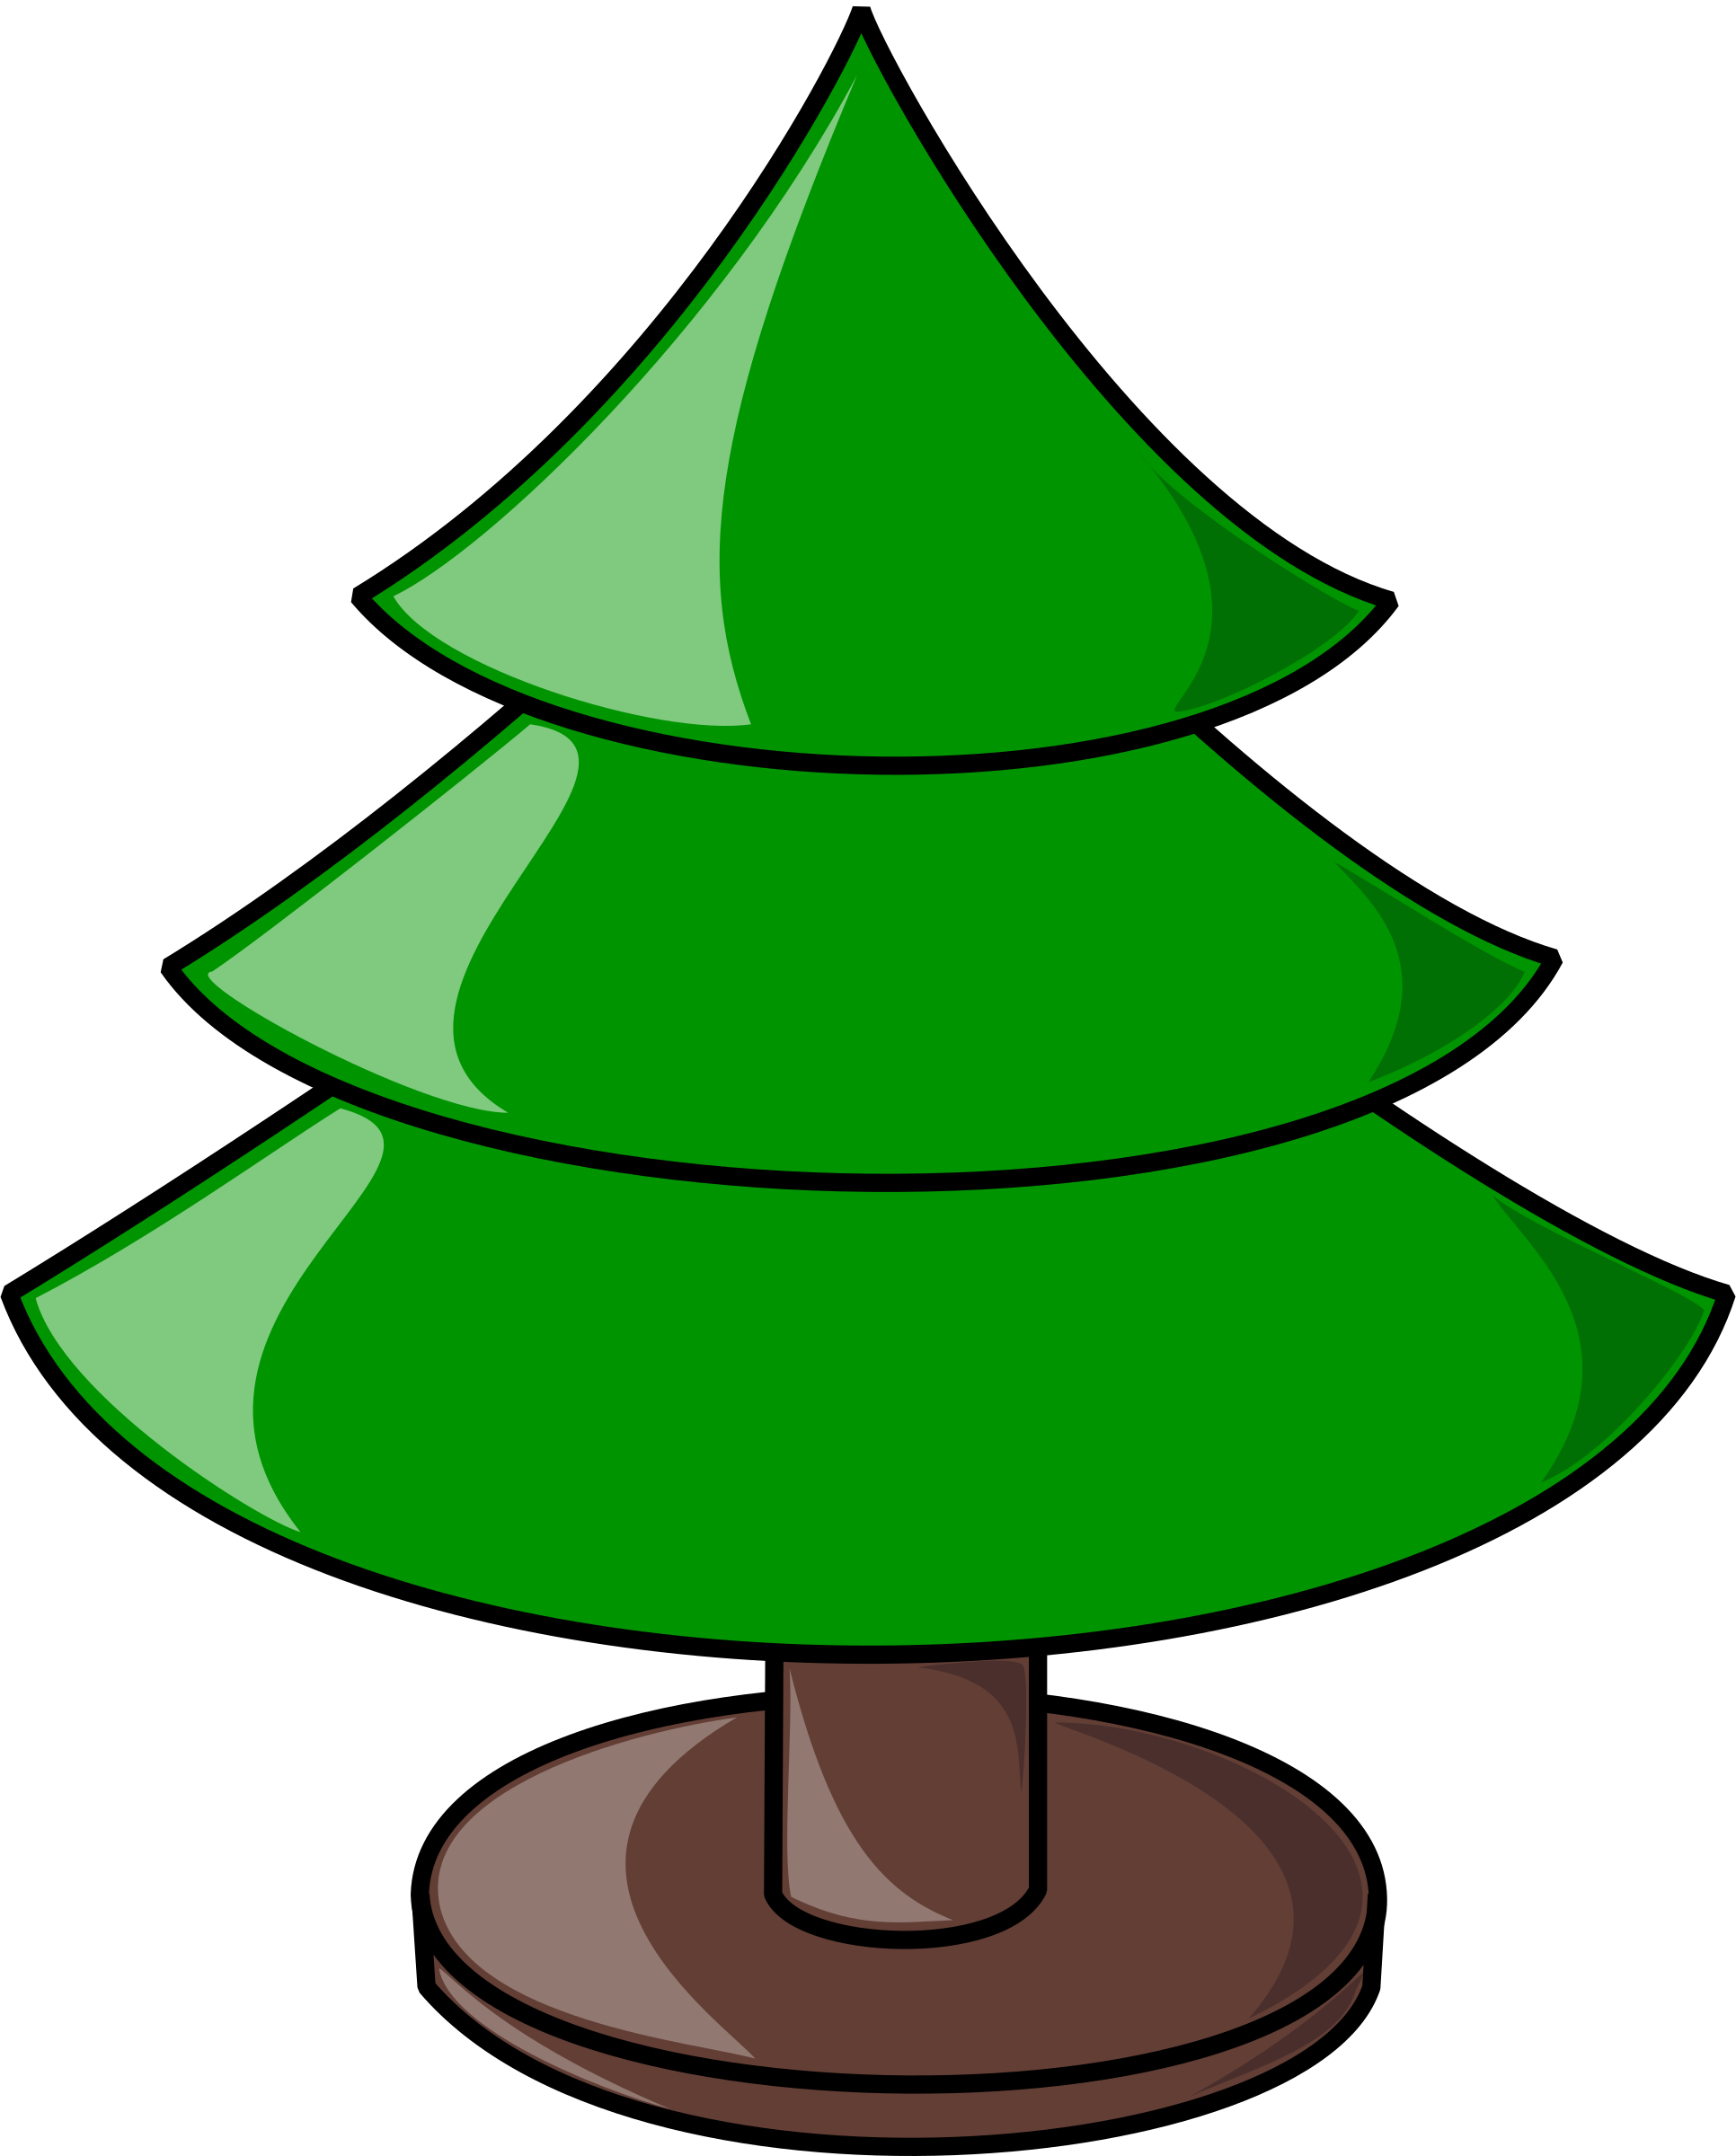 Chrismas tree clipart graphic free library Clipart - Christmas Tree (plain) graphic free library